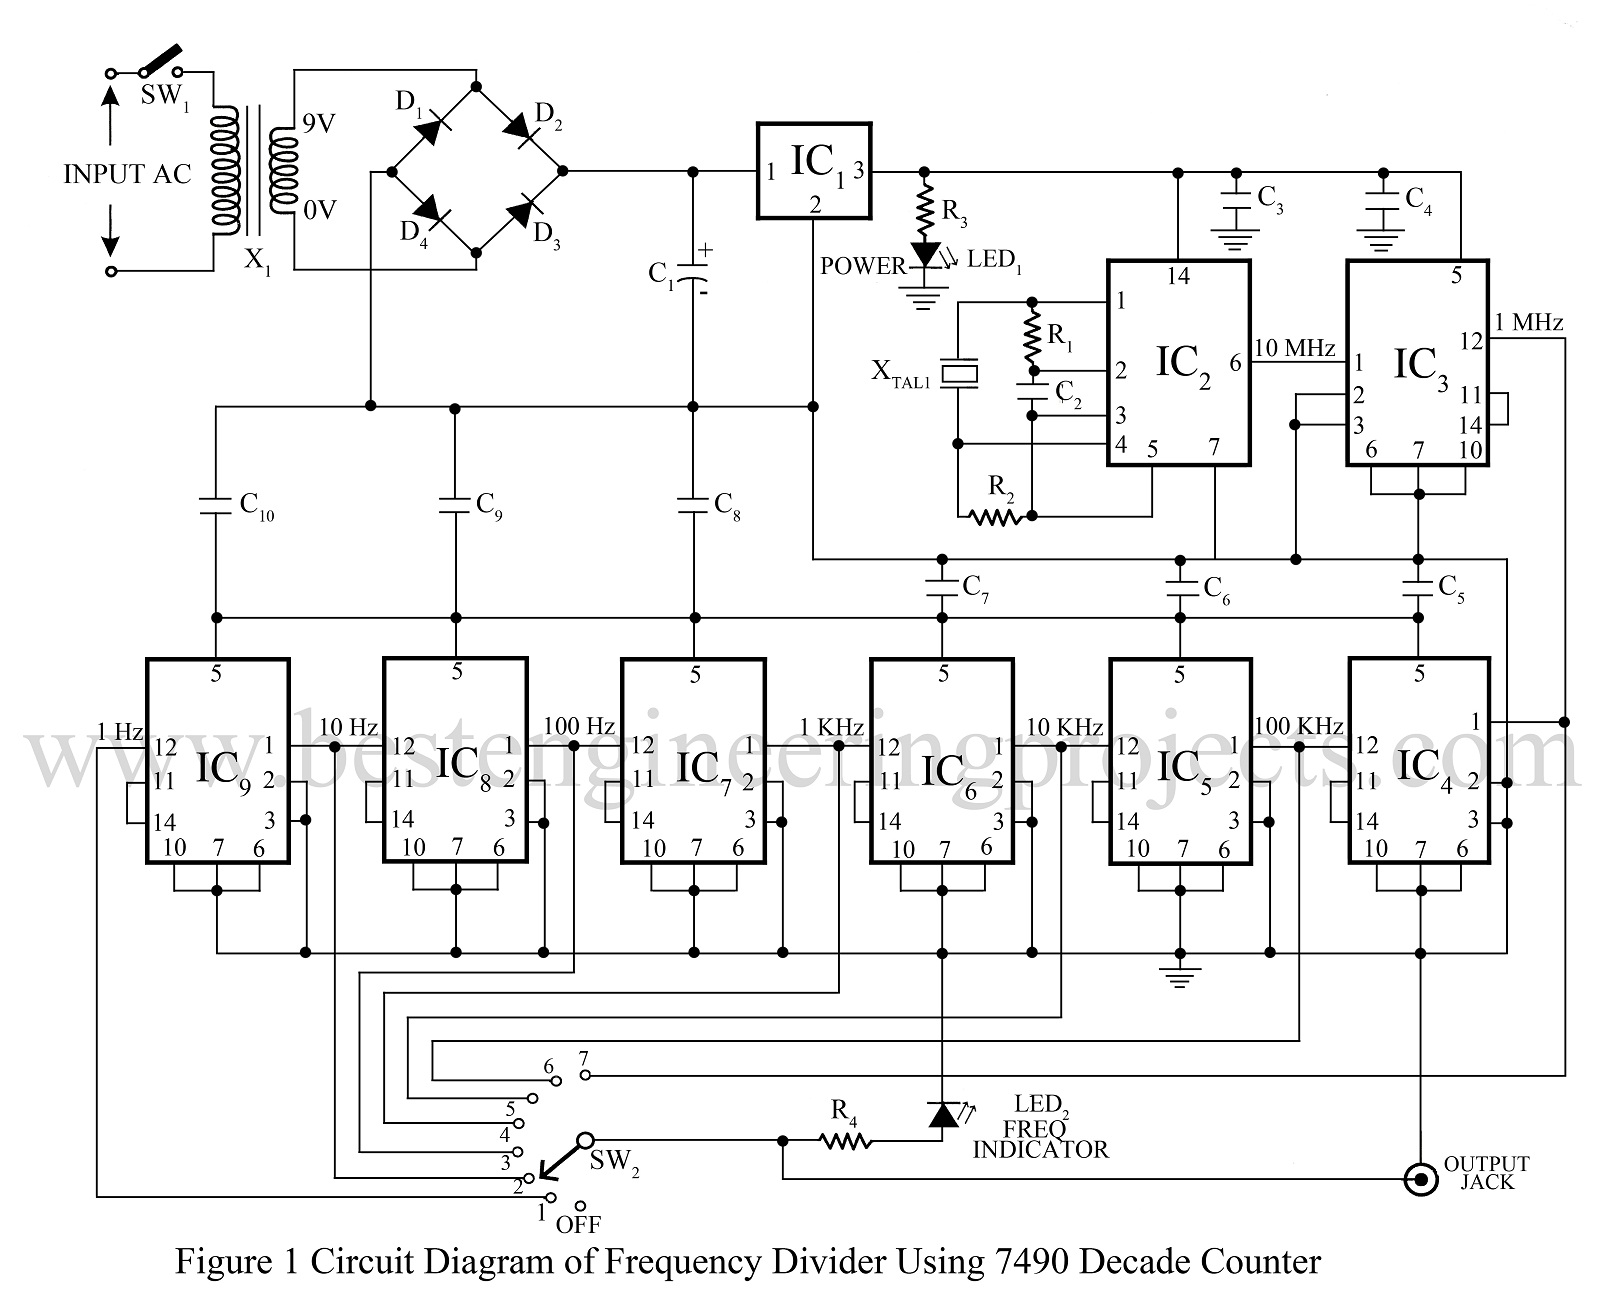 decade counter circuit diagram using 7490 weider pro 4950 cable frequency generator and divider digital